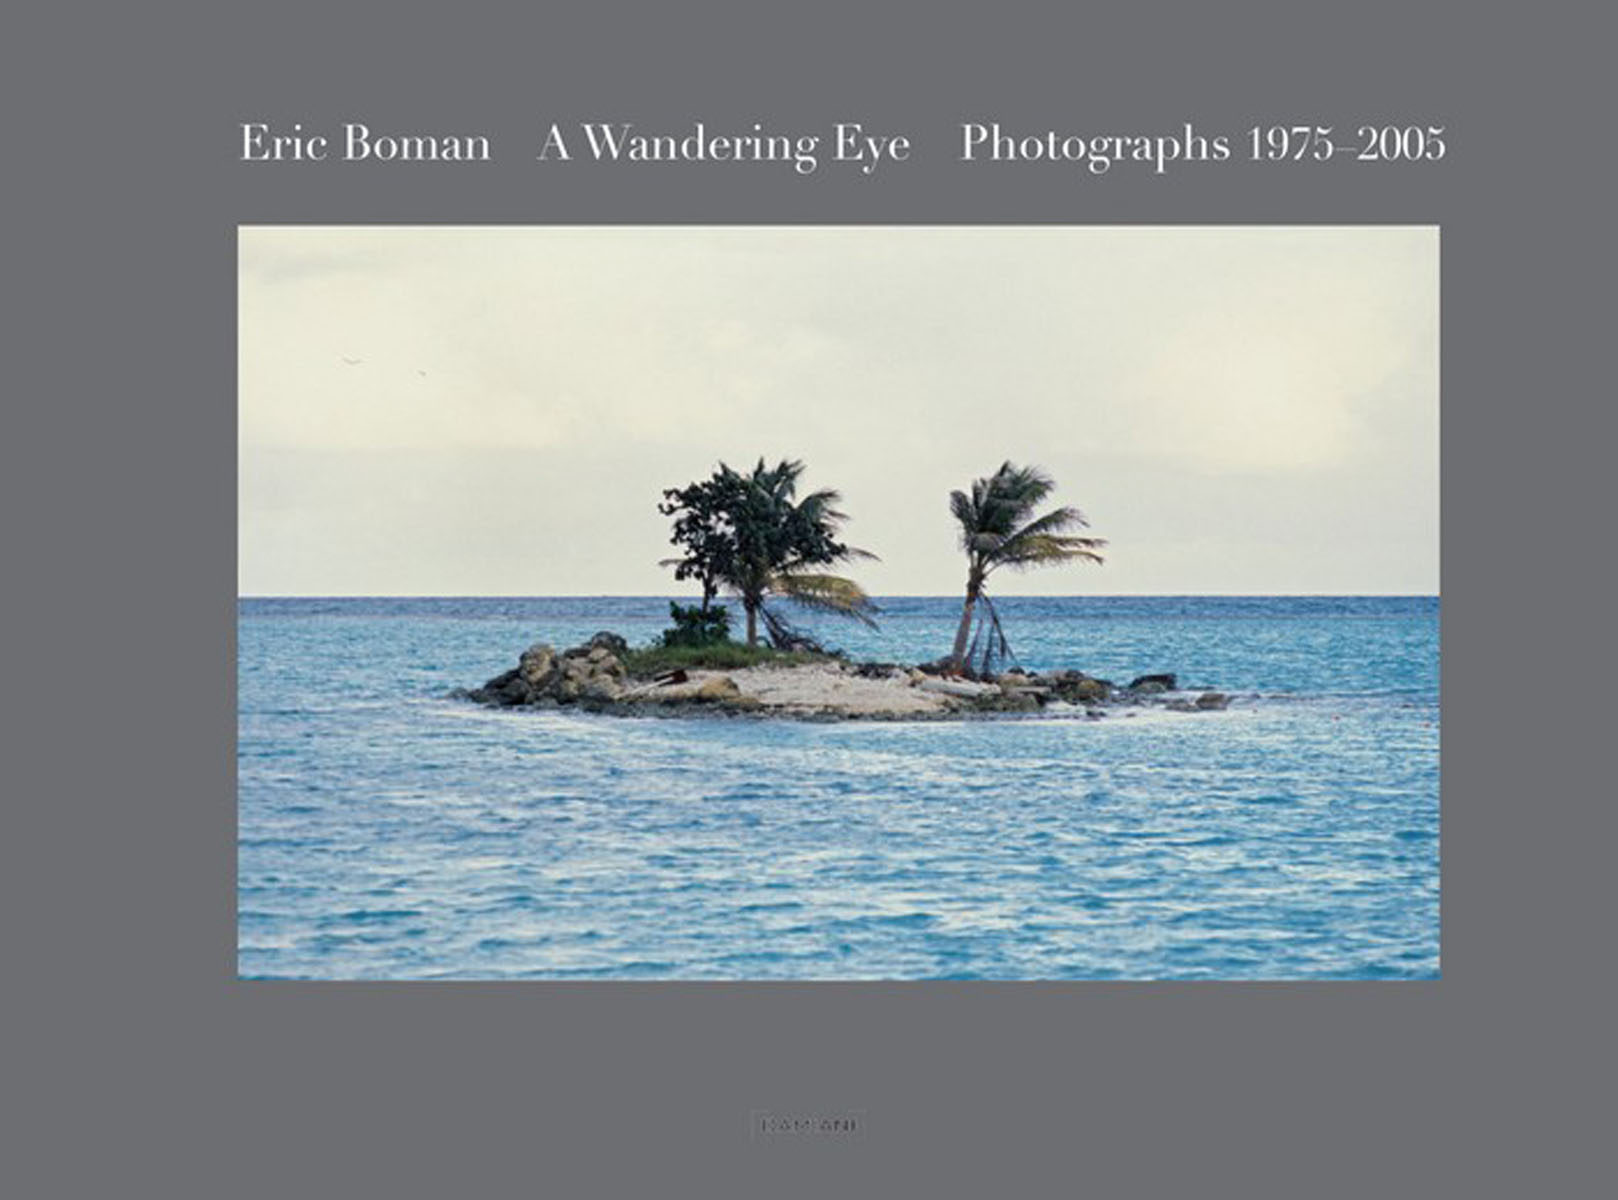 A Wandering Eye. Photographs 1975 - 2005 merchant of venice the